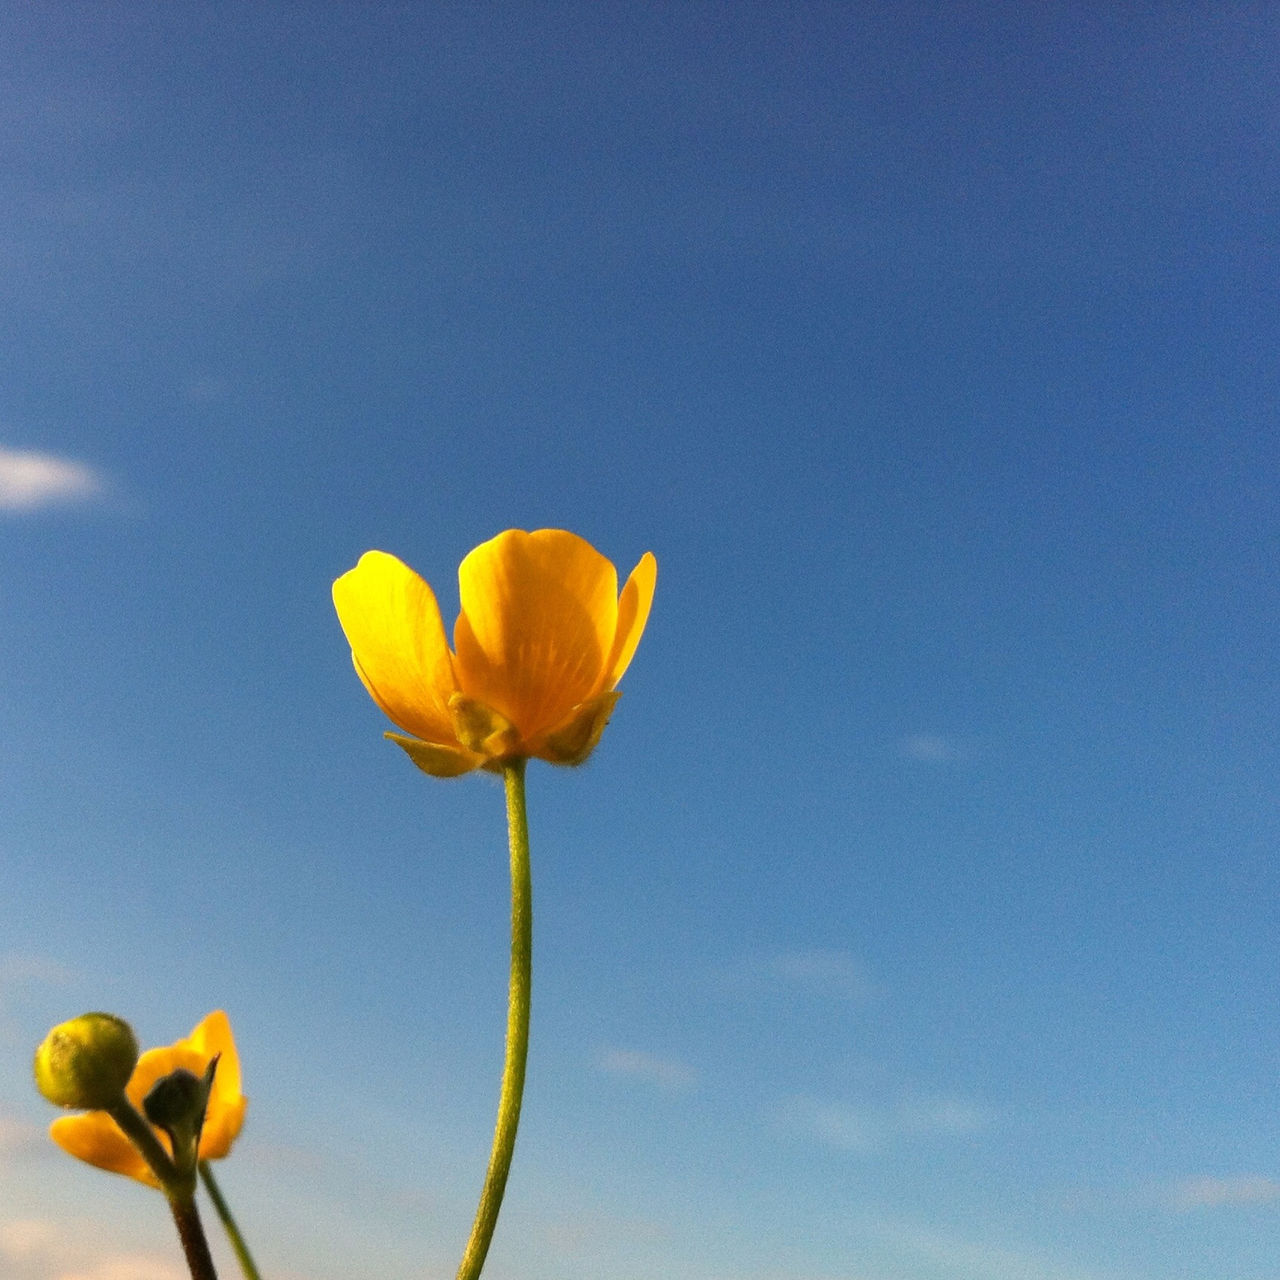 Low angle view of yellow flower against blue sky